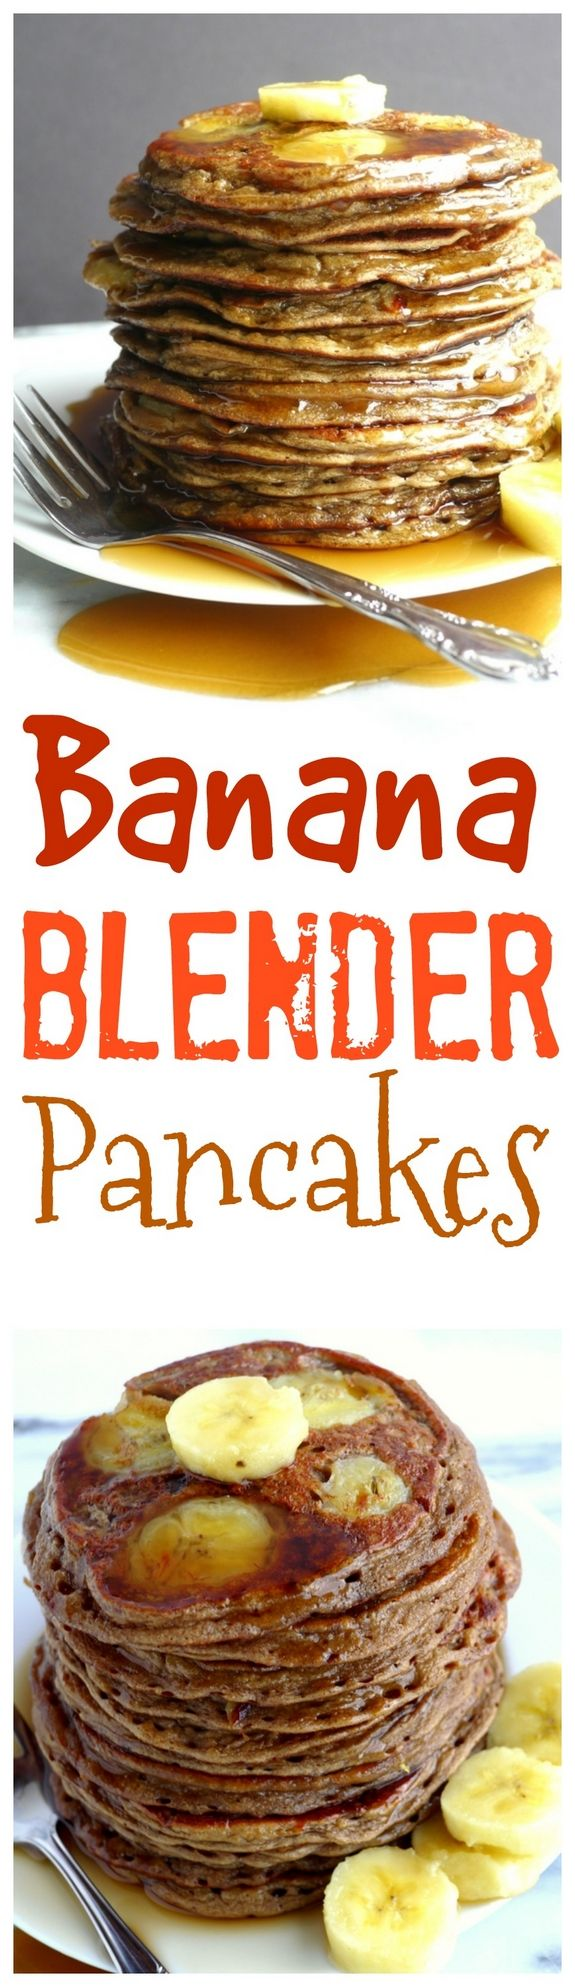 Quick and easy, these Banana Blender Pancakes are a cinch to throw together. Protein rich ingredients help create the base of these delicious and hearty pancakes, making breakfast a win-win for everyone in your home, from NoblePig.com.